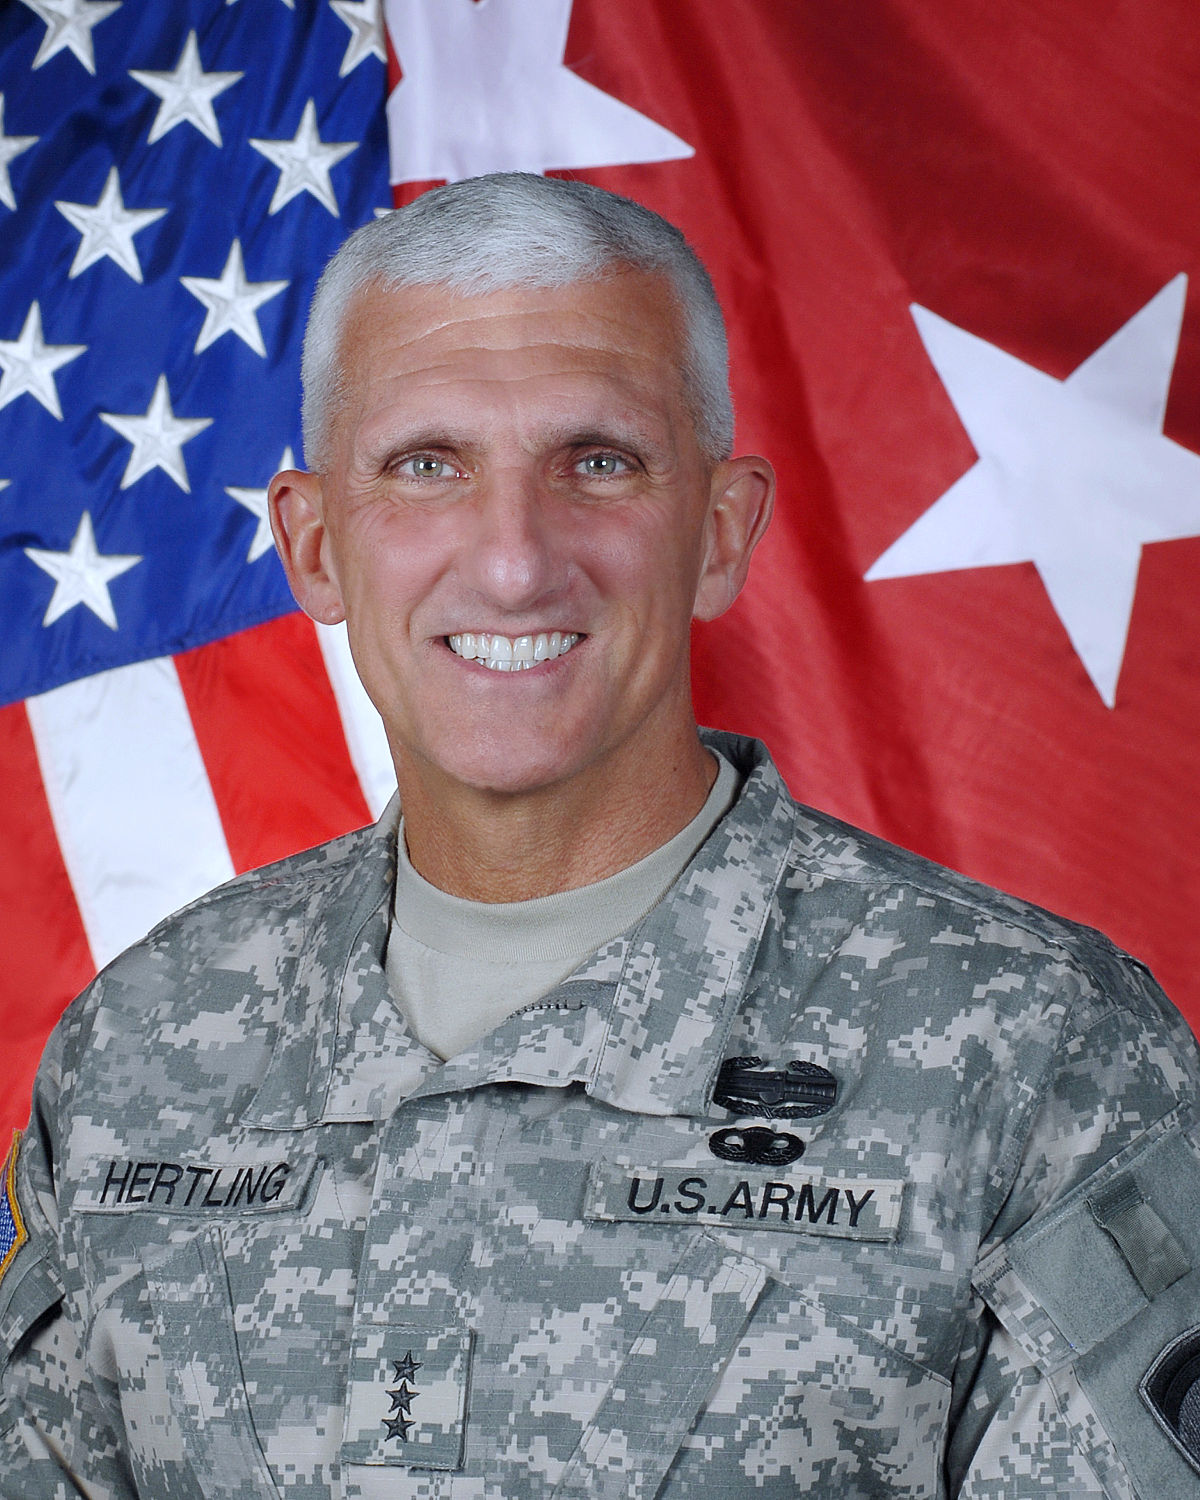 U S Games Systems Inc Tarot Inspiration Universal: Mark Hertling